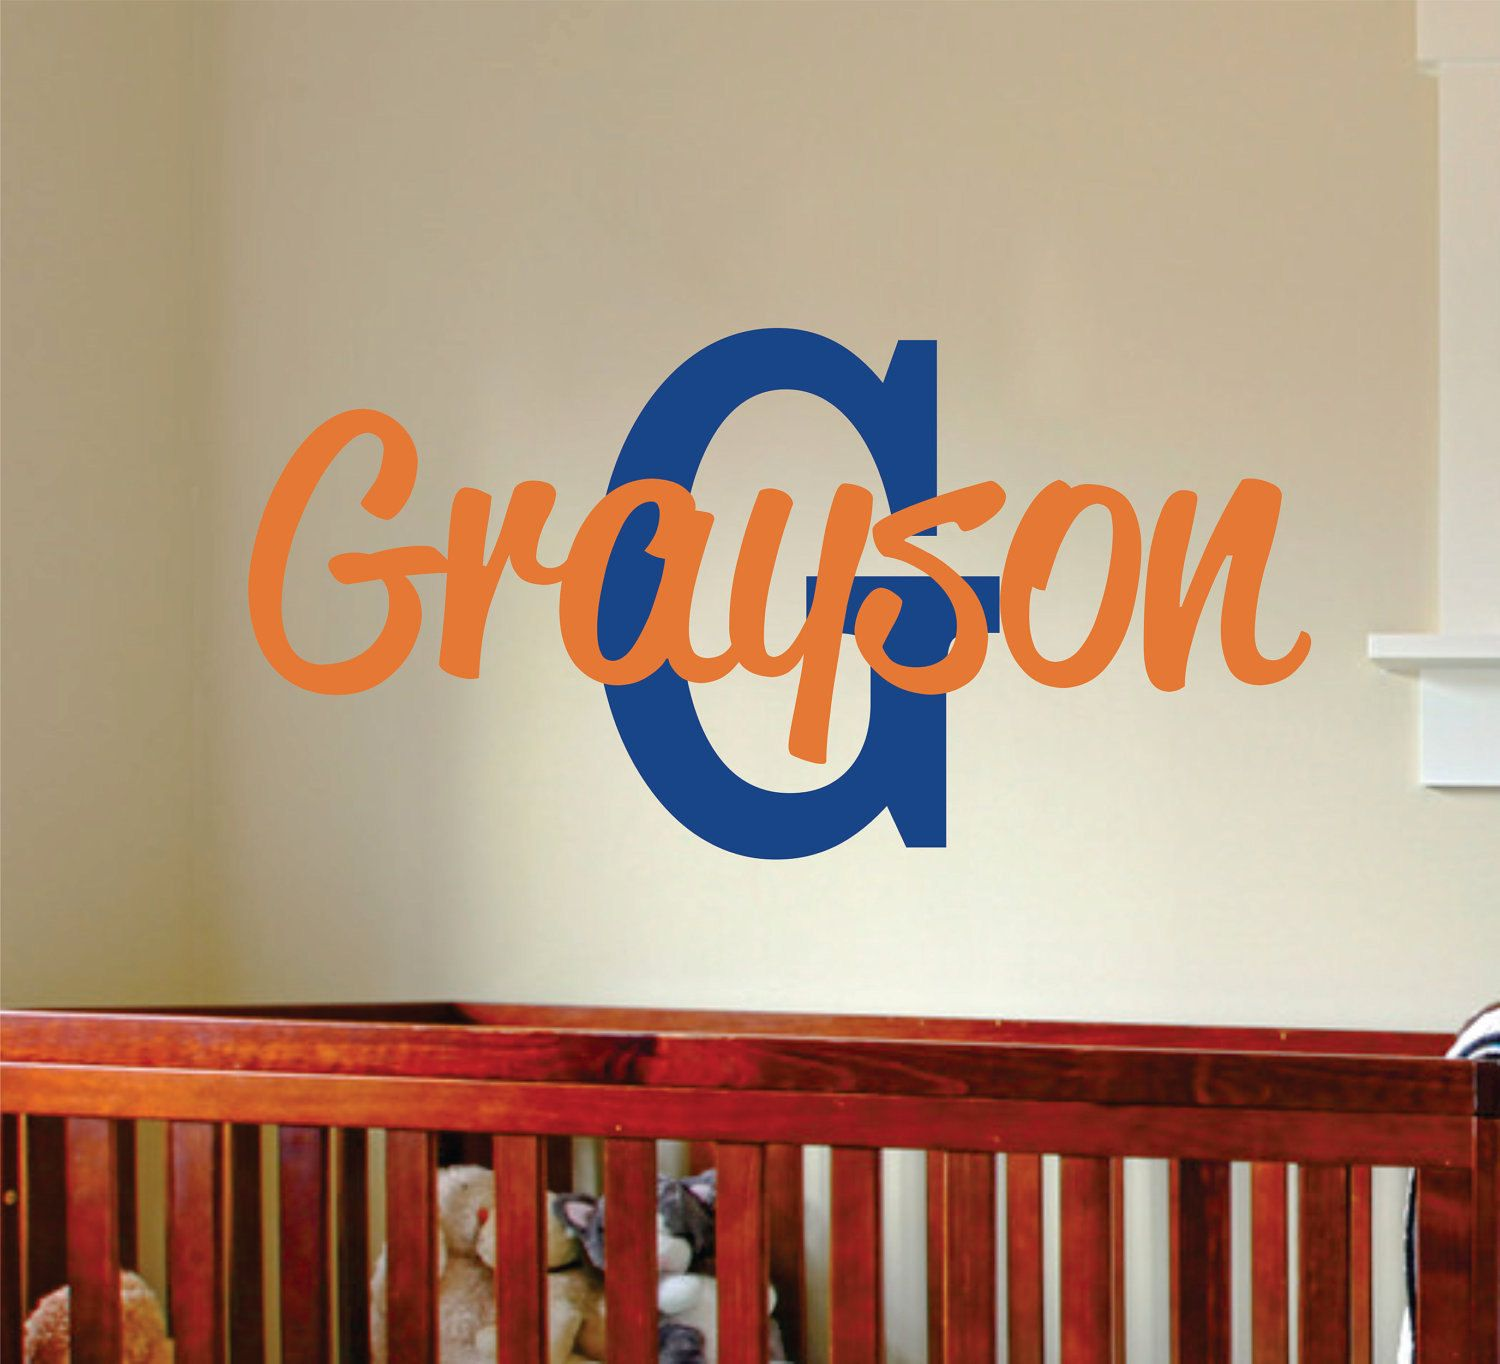 Boys Name Wall Decal Name Wall Decal Teen Boy Vinyl Wall Art - Personalized custom vinyl wall decals for nurserypersonalized wall decals for kids rooms wall art personalized